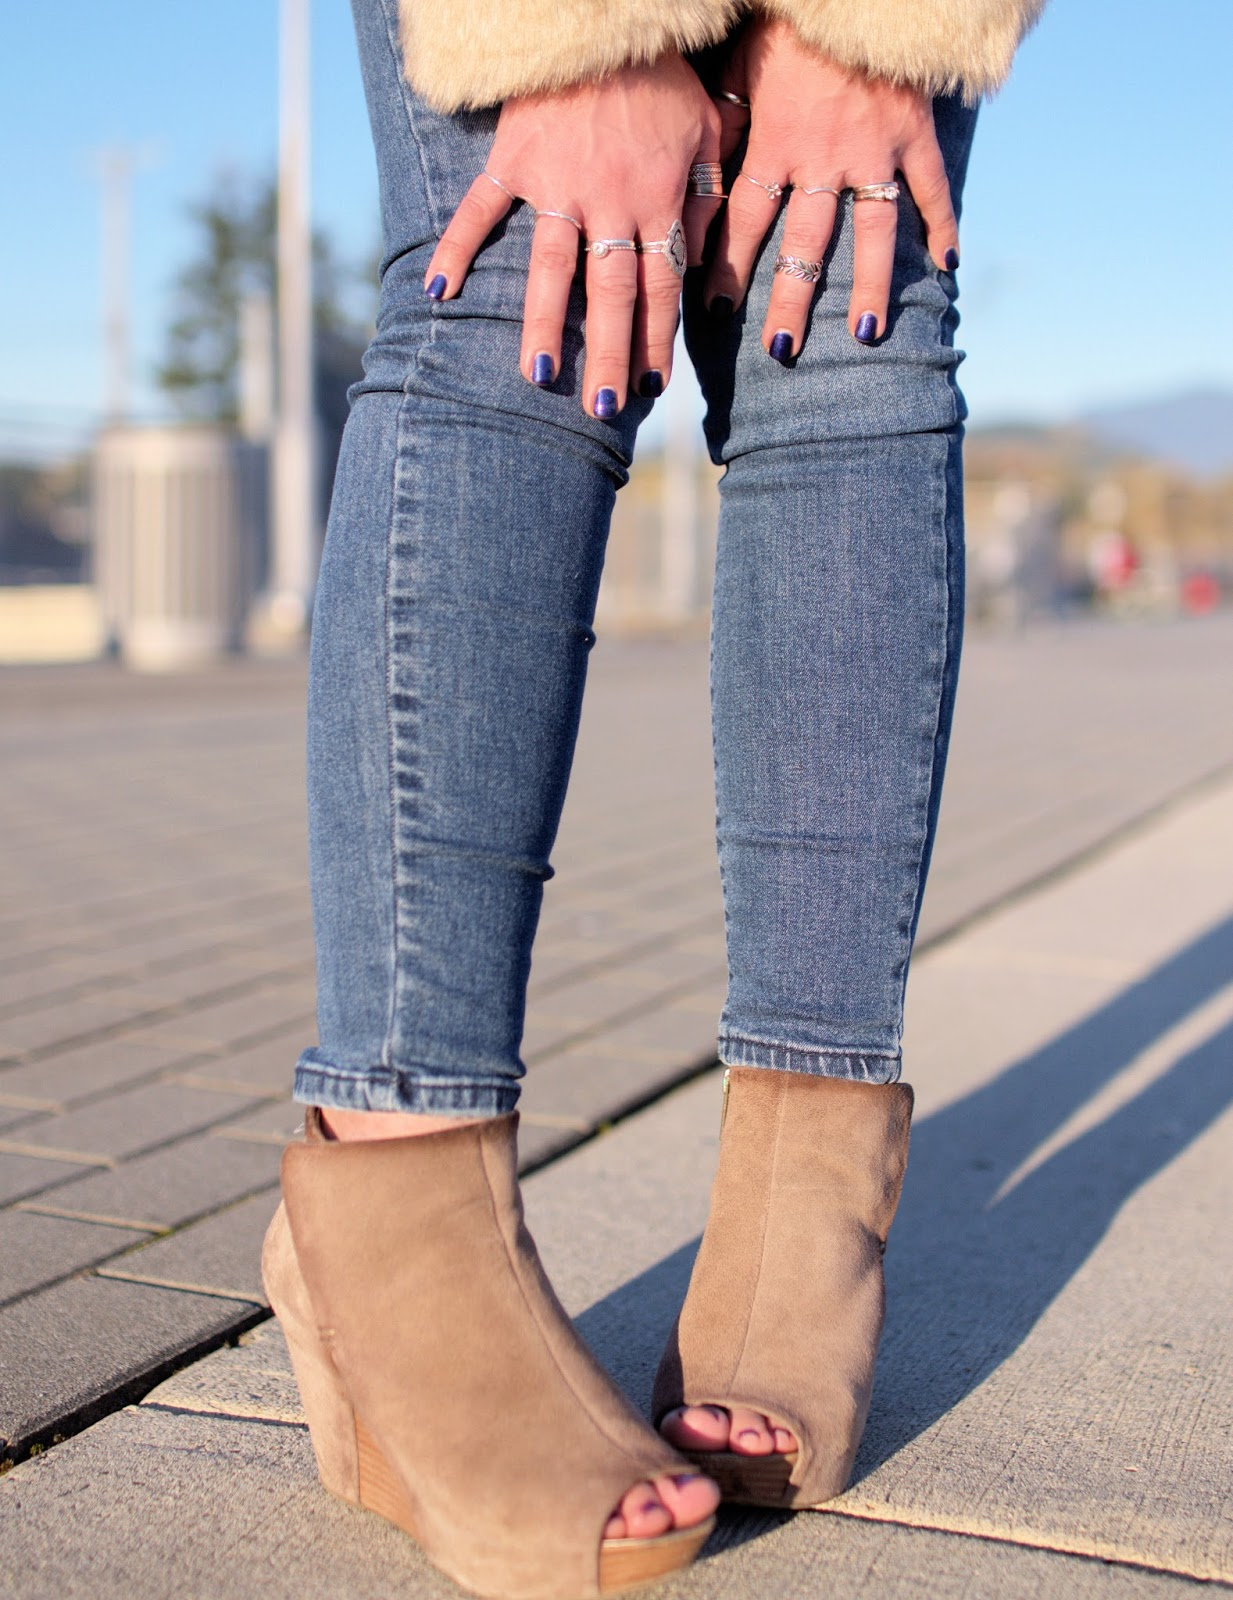 Monika Faulkner outfit inspiration - skinny jeans, open-toe wedge booties, stacked rings